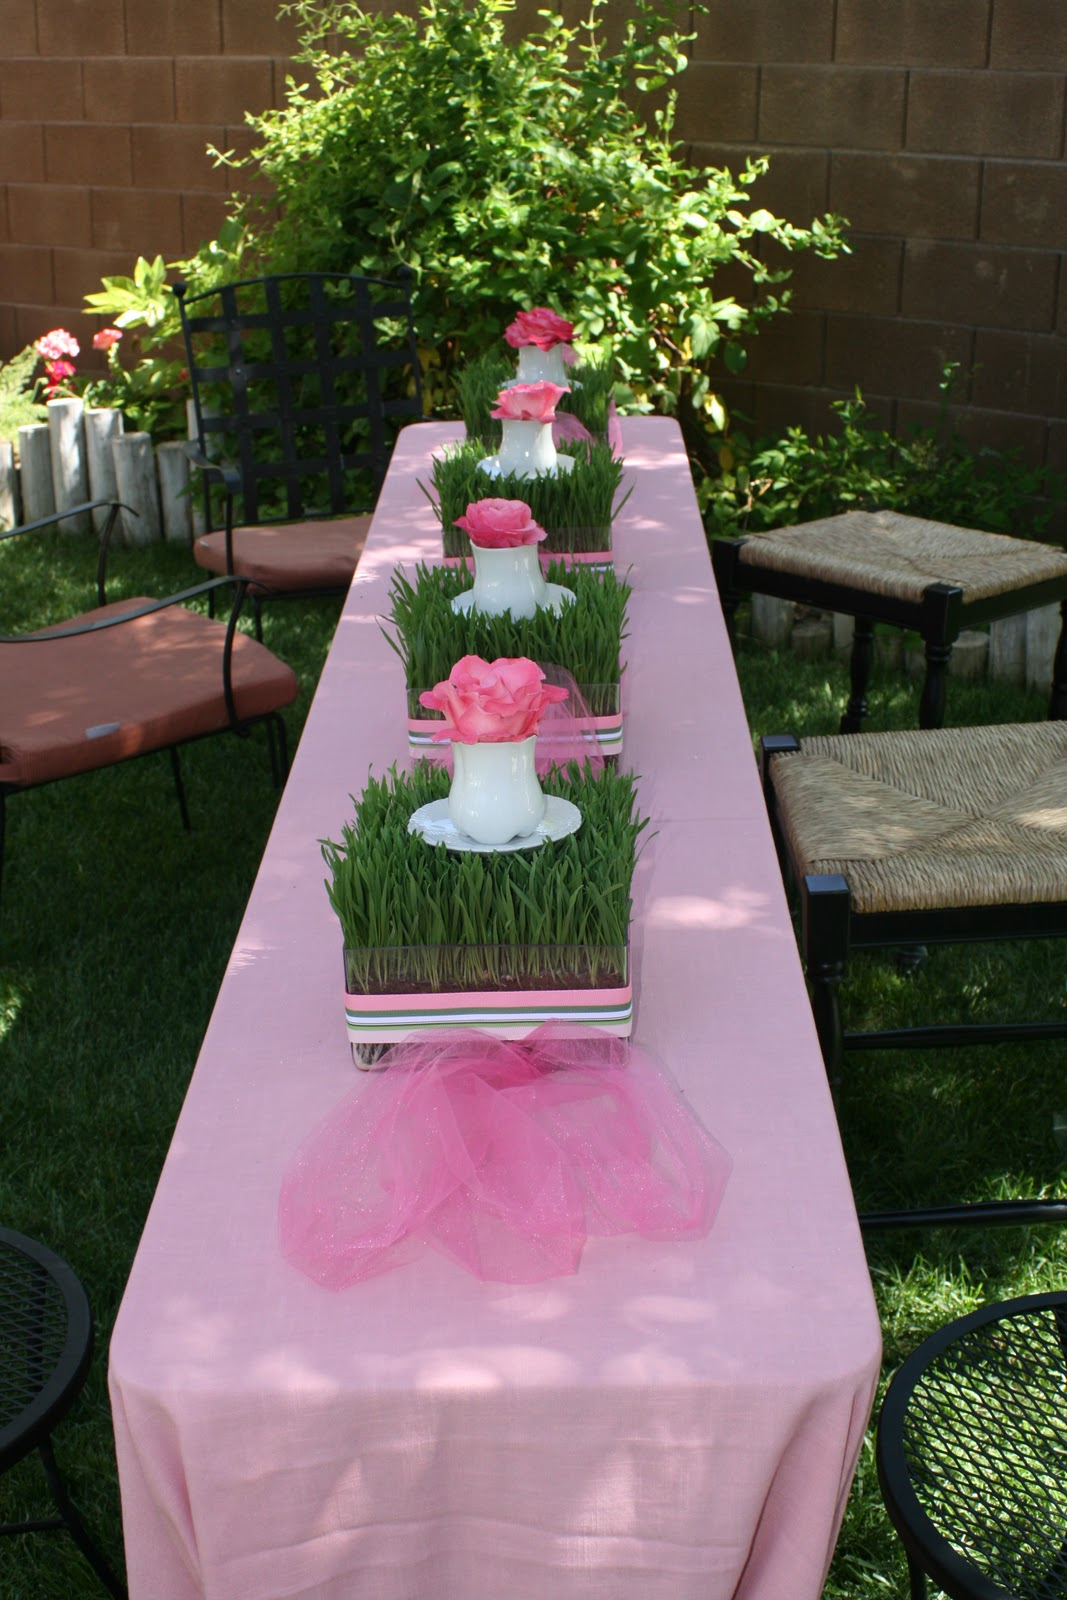 Garden baby shower decor - Pink Tulle Anchors The Centerpieces